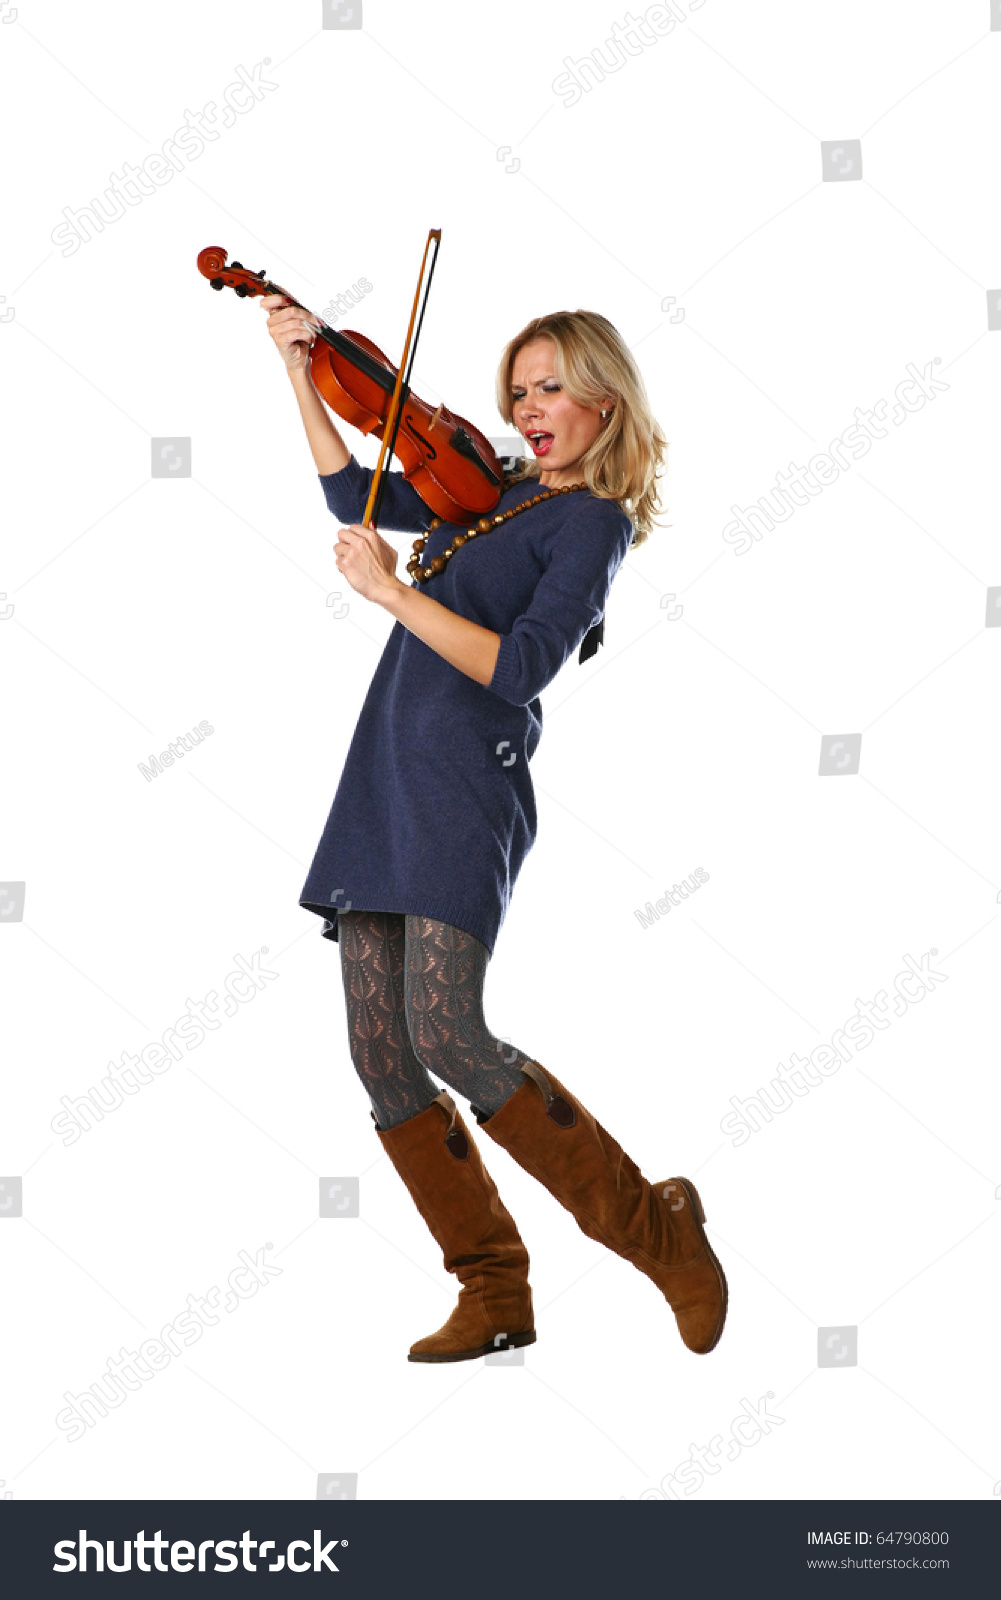 Blond haired lady playing violin expressing extreme emotions. She is having fun. Full length portrait of a female violinist isolated on white background.